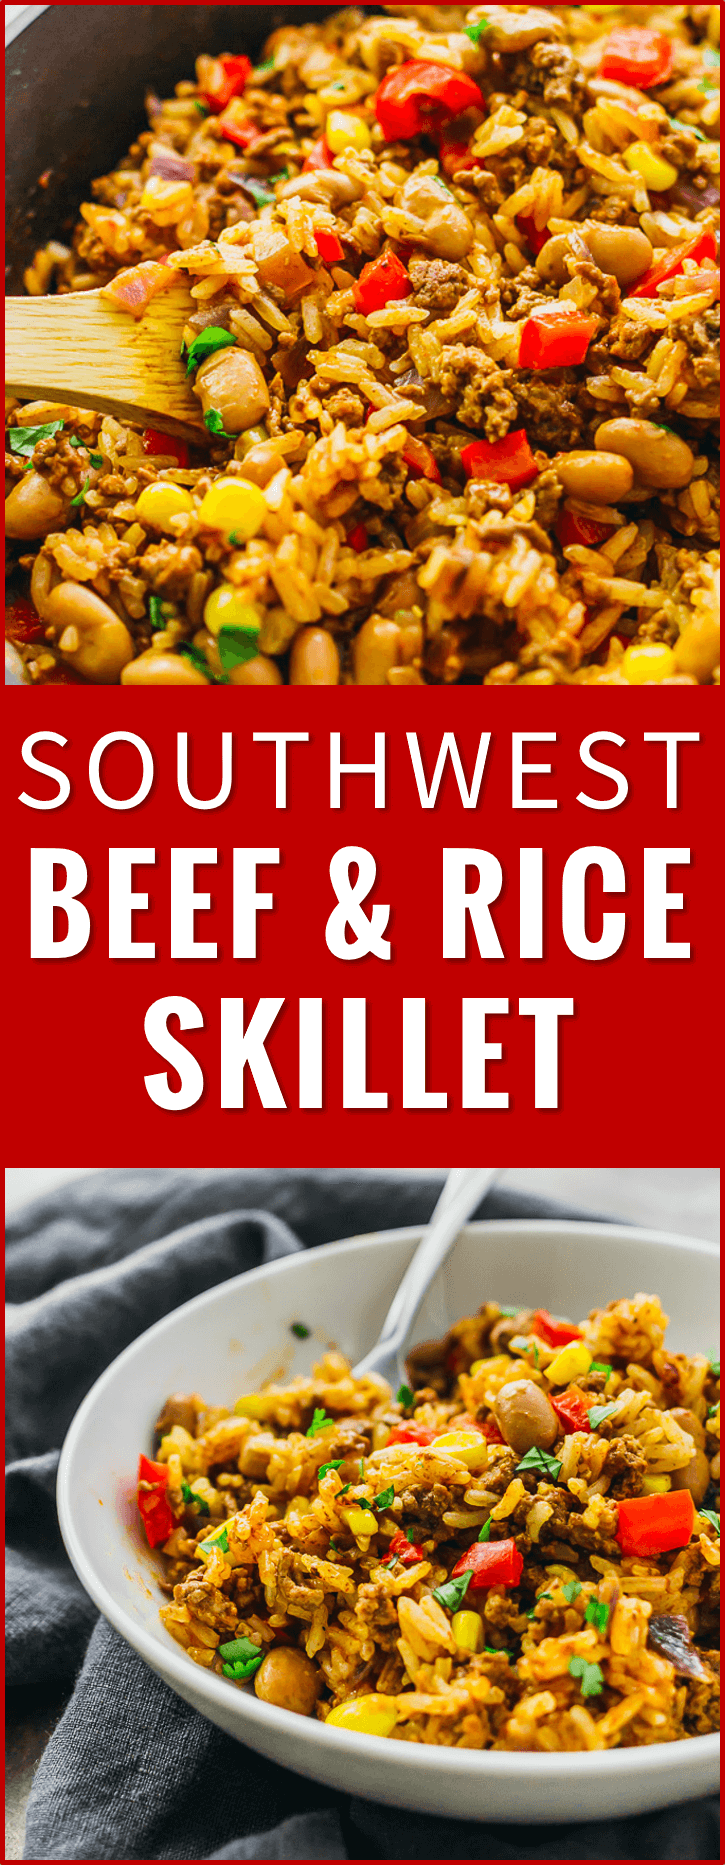 Southwest beef and rice skillet - This tasty Southwest skillet has ground beef, rice, peppers, onions, pinto beans, corn, and a dash of cayenne -- all cooked together in one pan. recipe, recipes, cooking, stir fry, mexican, easy, healthy, bowl, tex mex, dinner, one pot, dishes, crisp, meat, tomatoes, pf changs, lunches, red beans, ovens, quick meals, cups, house